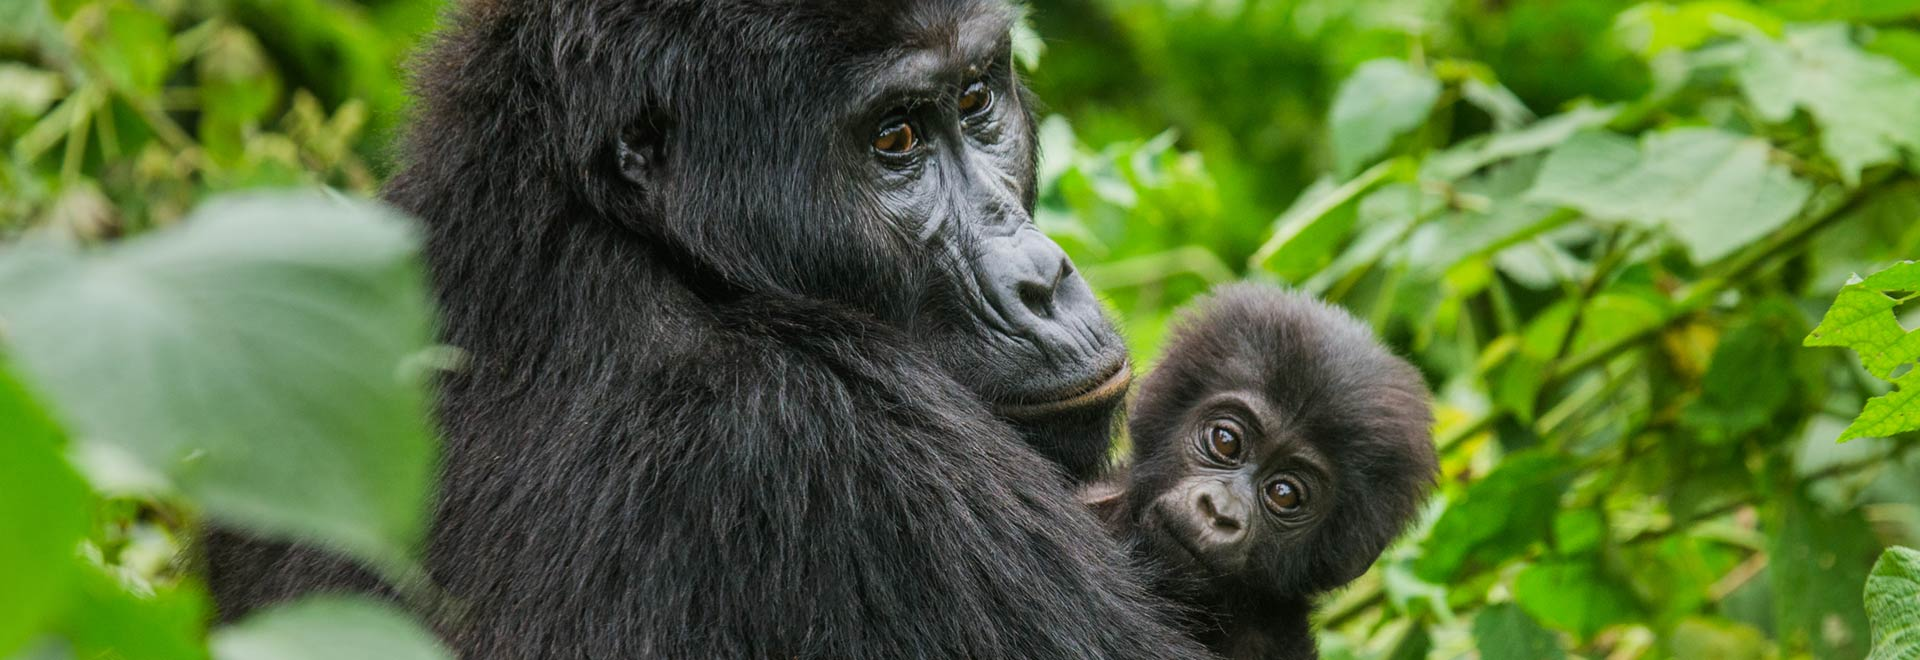 East Africa Uganda Bwindi Impenetrable Forest